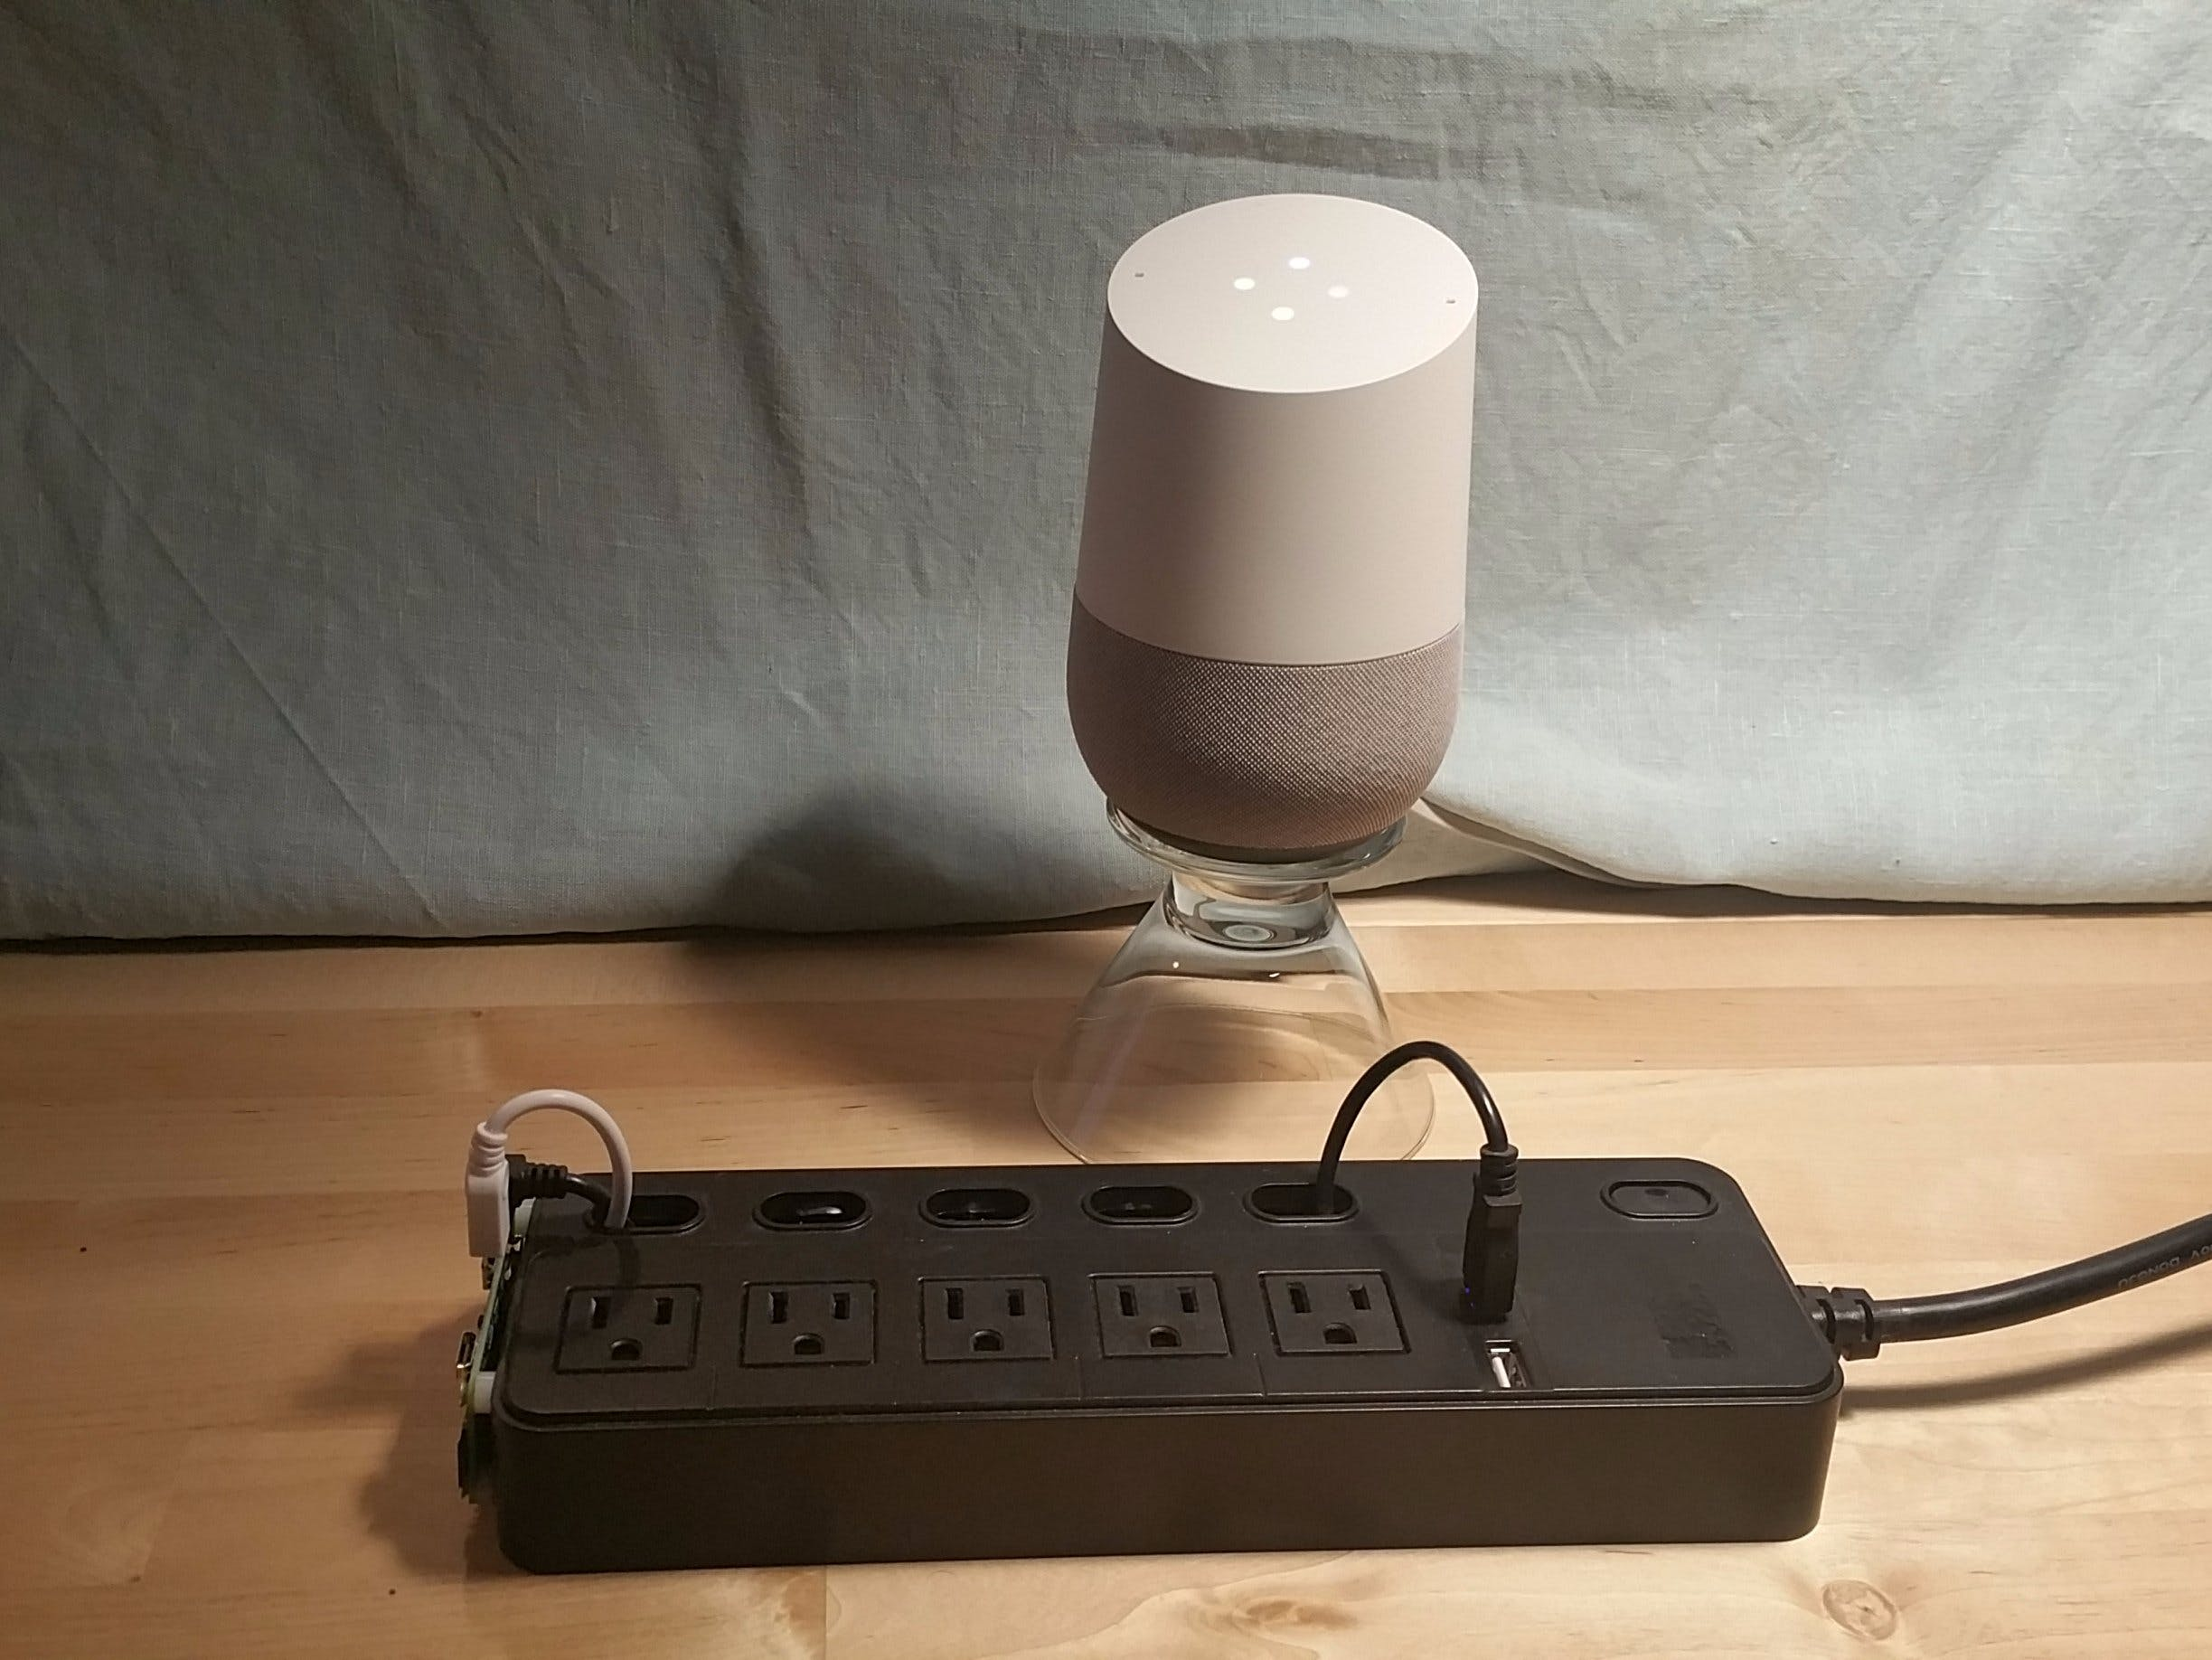 Connecting Google Home to Raspberry Pi Projects